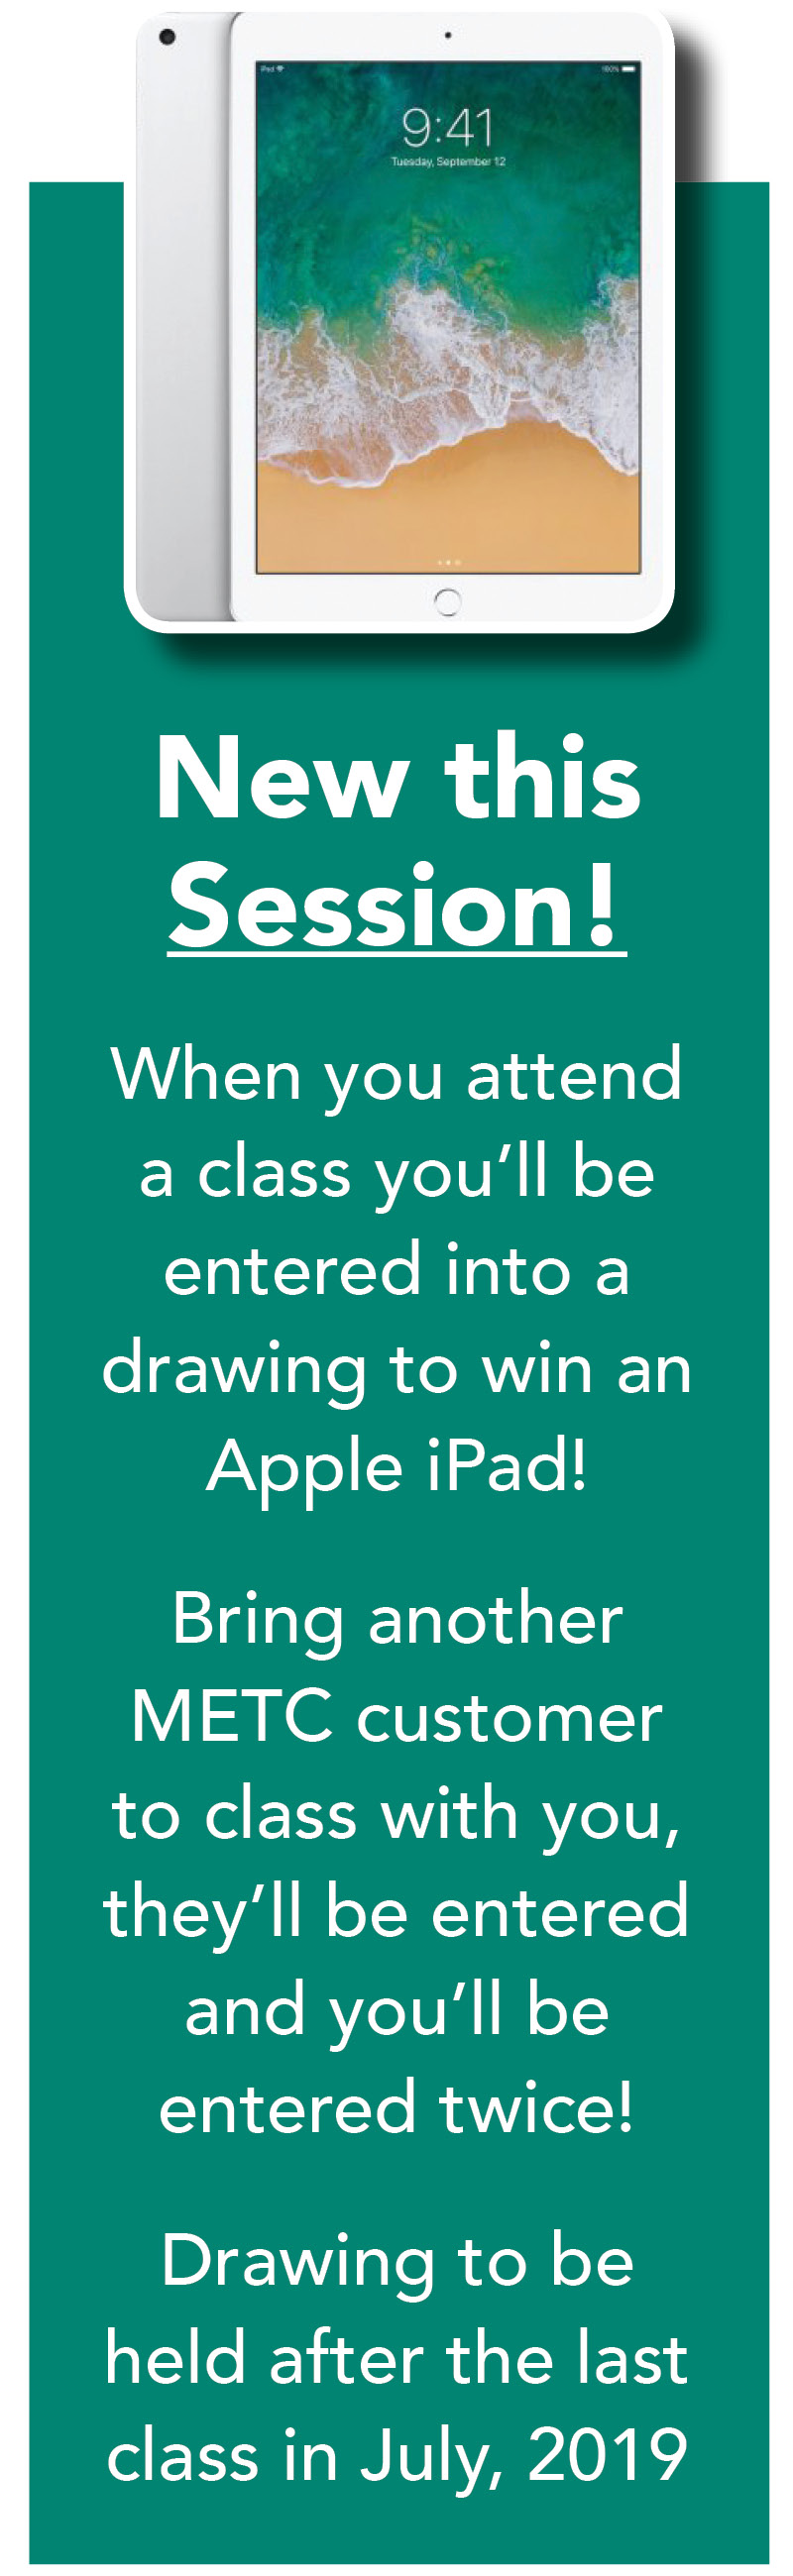 ipad give away website graphic.jpg